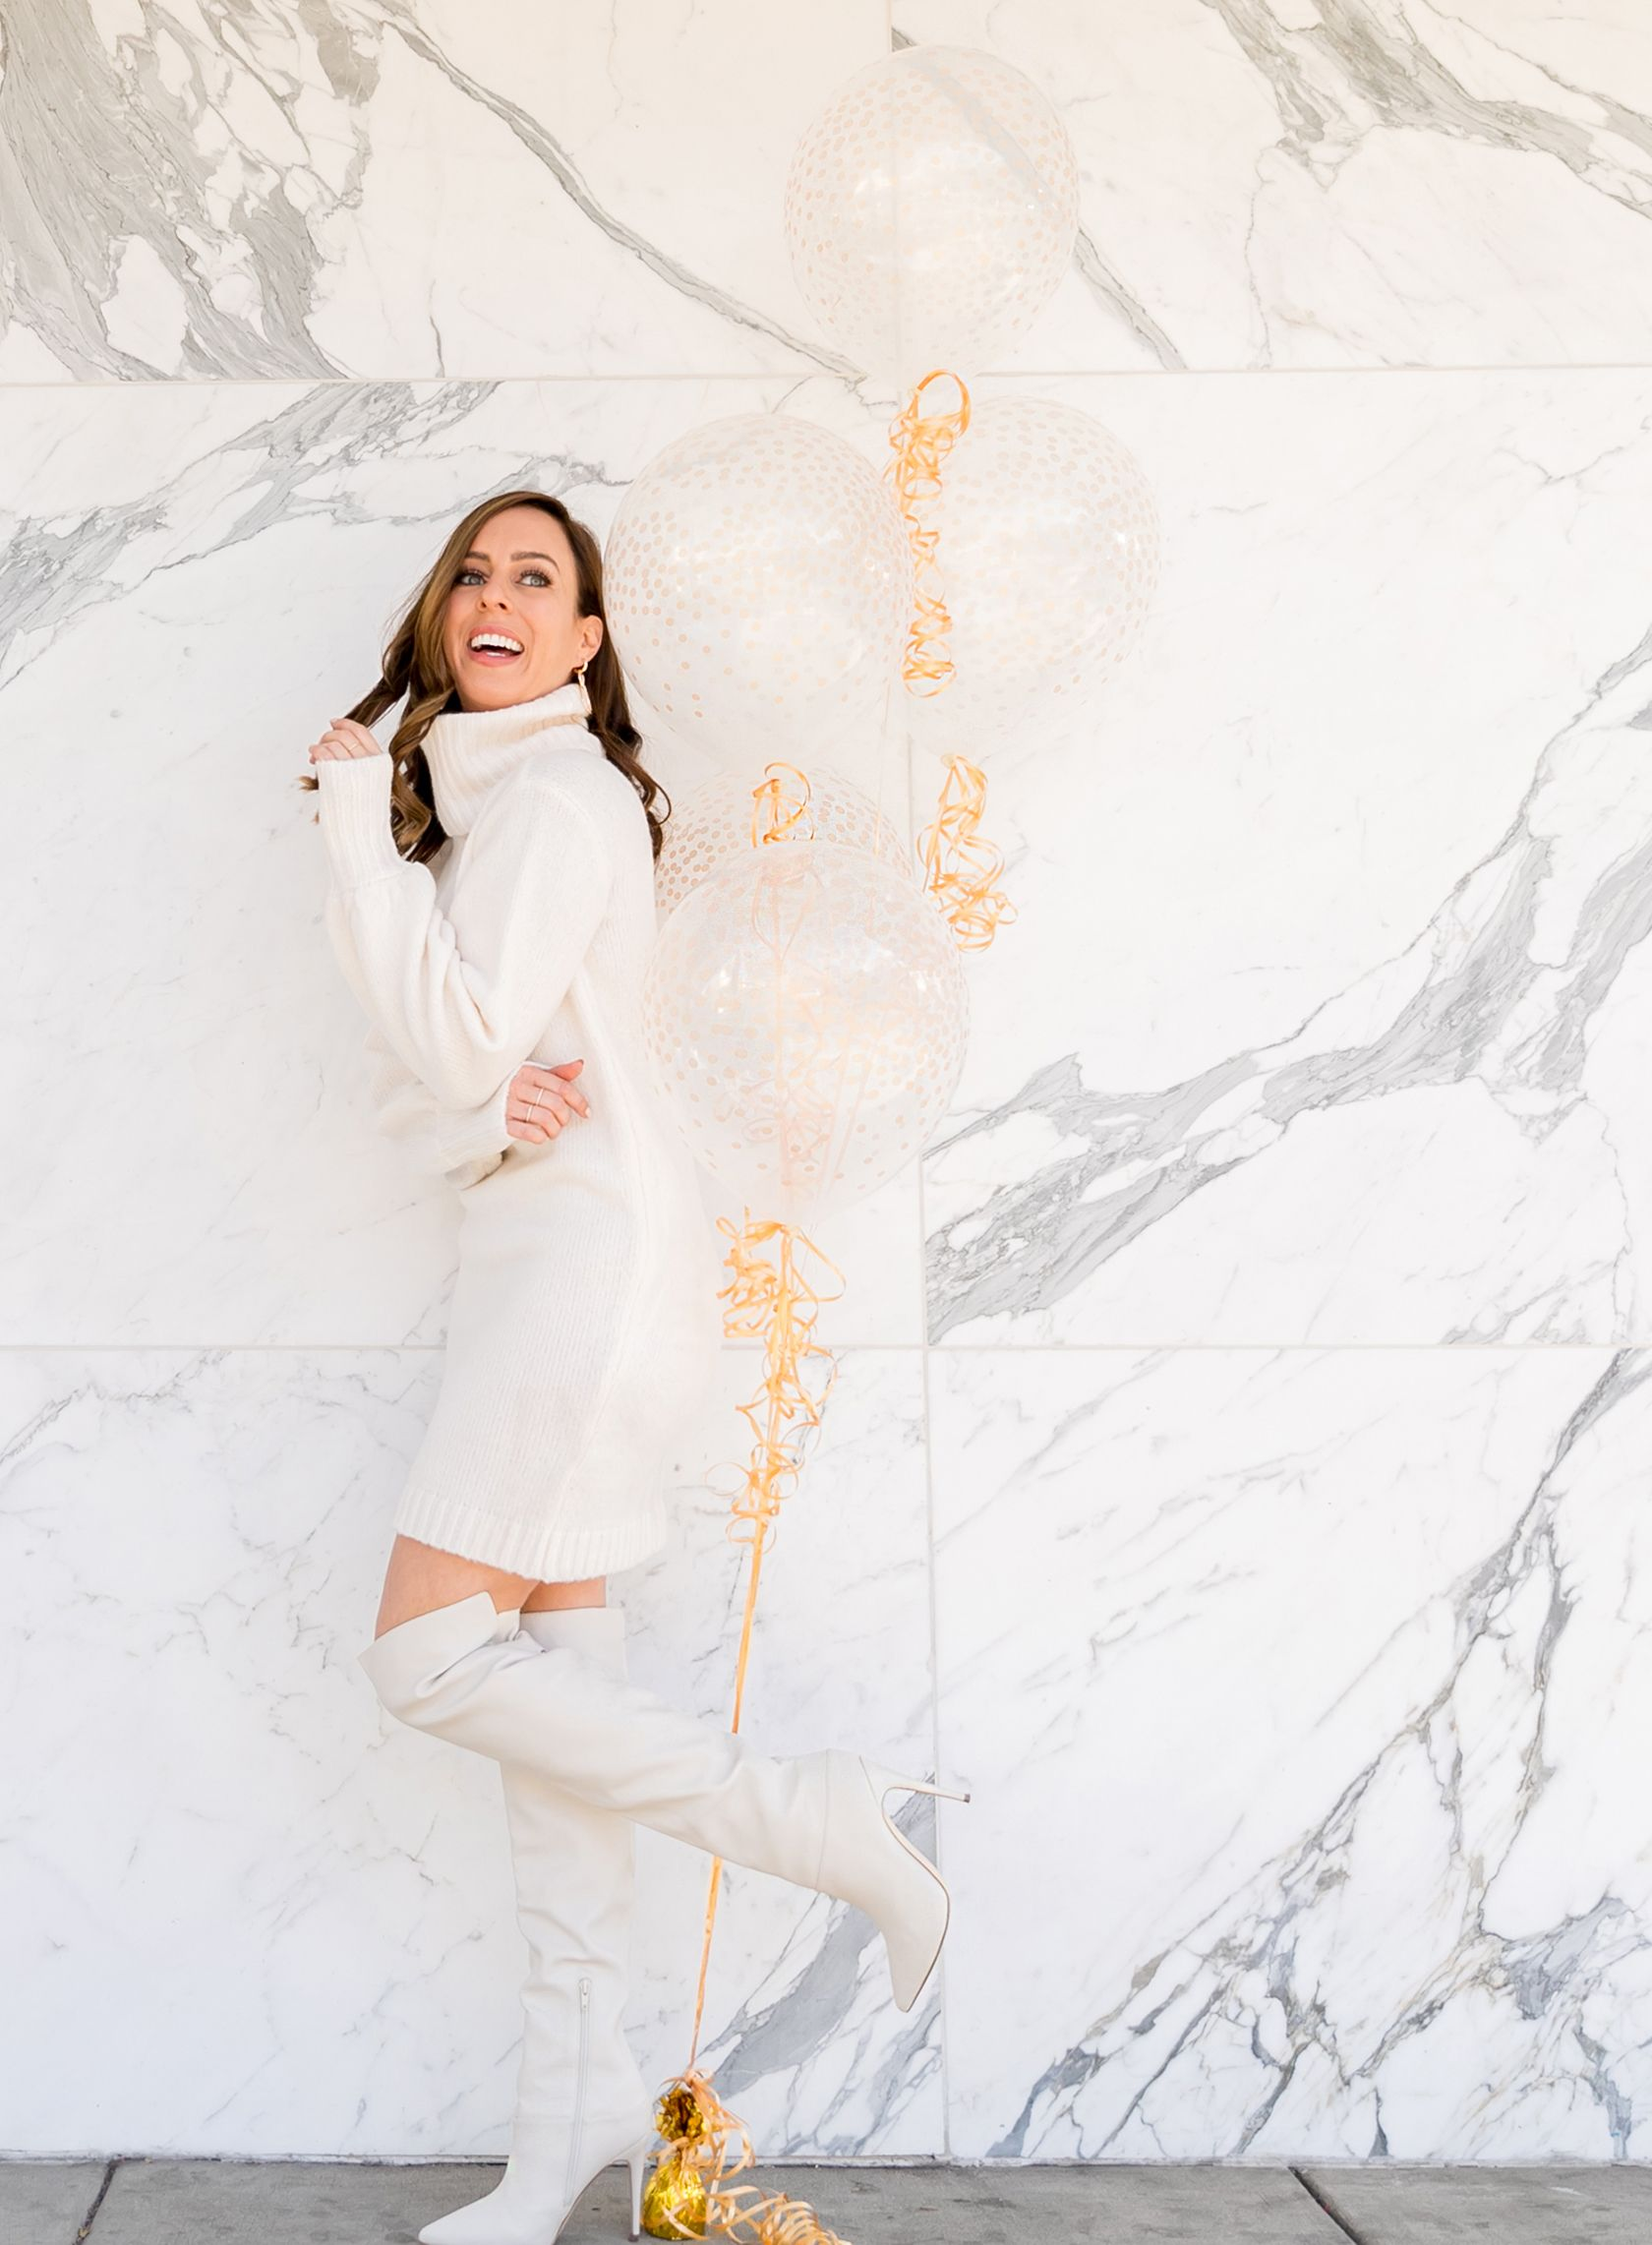 cef5cca18e4a Sydne Style shows winter white outfit ideas in over the knee boots # winterwhite #otkboots #boots #white #marble #balloons @sydnesummer